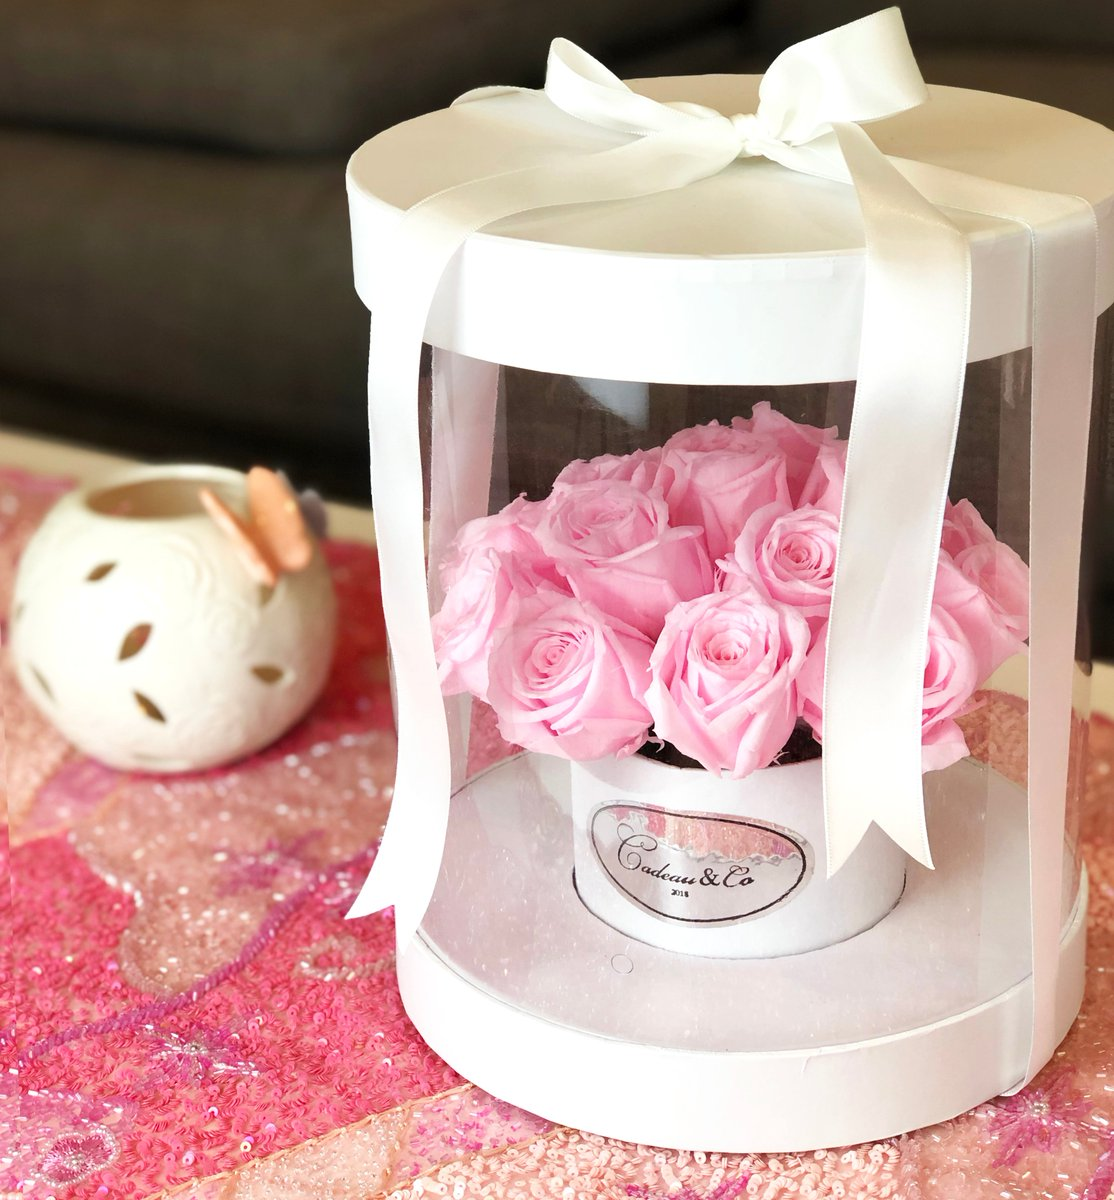 If you're looking for a gift this Mother's Day, get something that can last. Real flowers that last up to 3 years  . . . . . #gift #foreverflowers #cadeau #cadeaux #cadeauandco #everlastingflowers #mothersday #flowerboxes #gifts #flowers #pinkroses   https:// cadeauco.com.au/collections/dr eam  … <br>http://pic.twitter.com/Wg1Hm1eICp